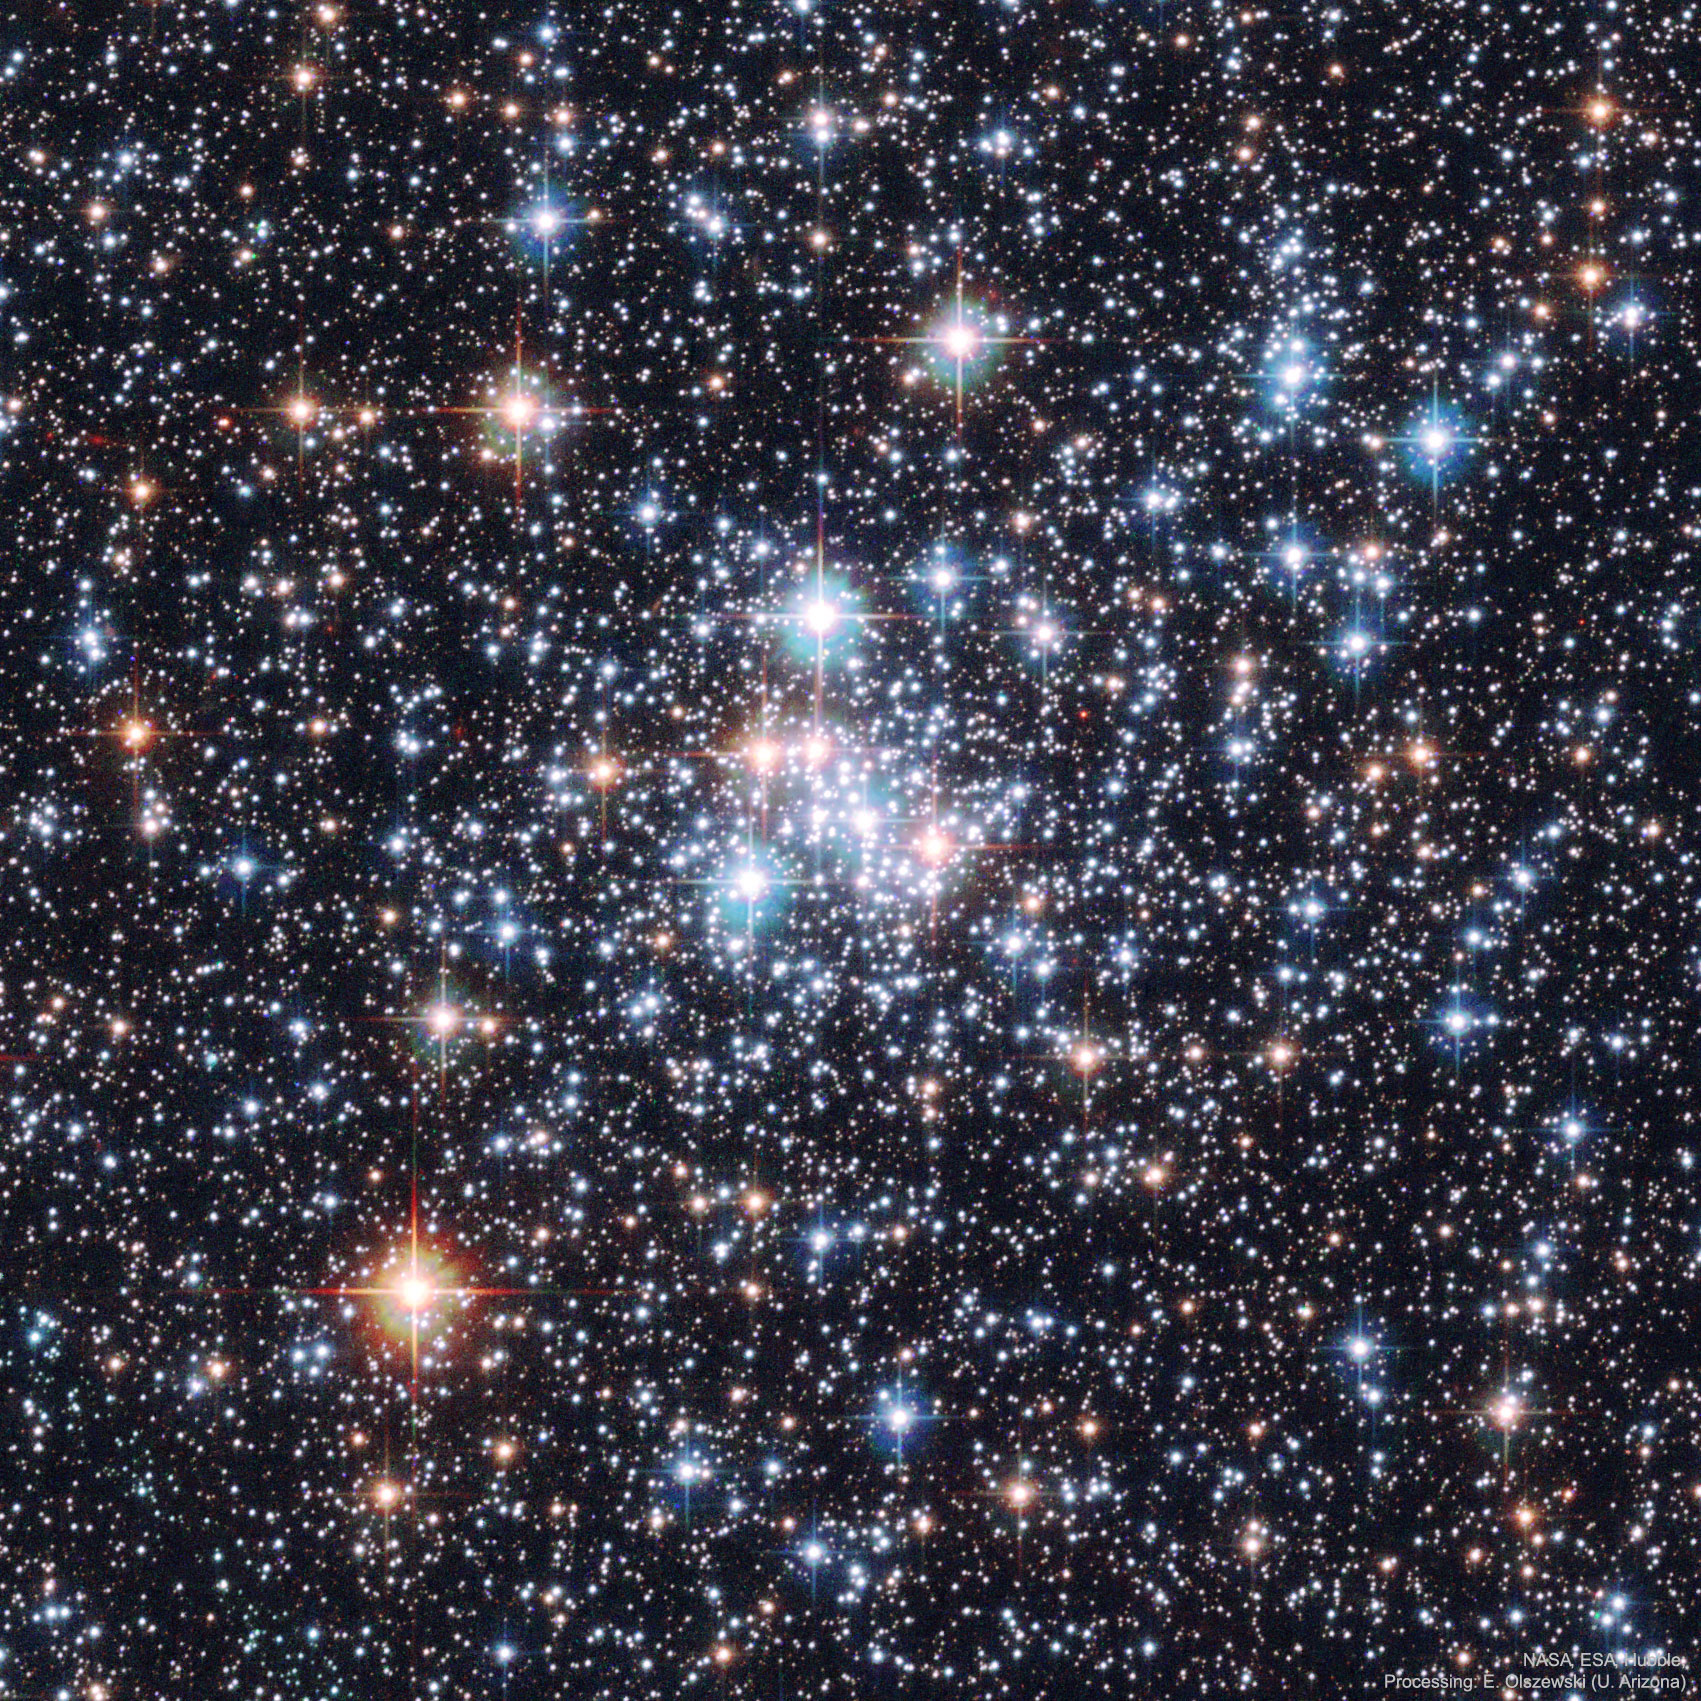 APOD: 2019 October 13 - A Stellar Jewel Box: Open Cluster NGC 290